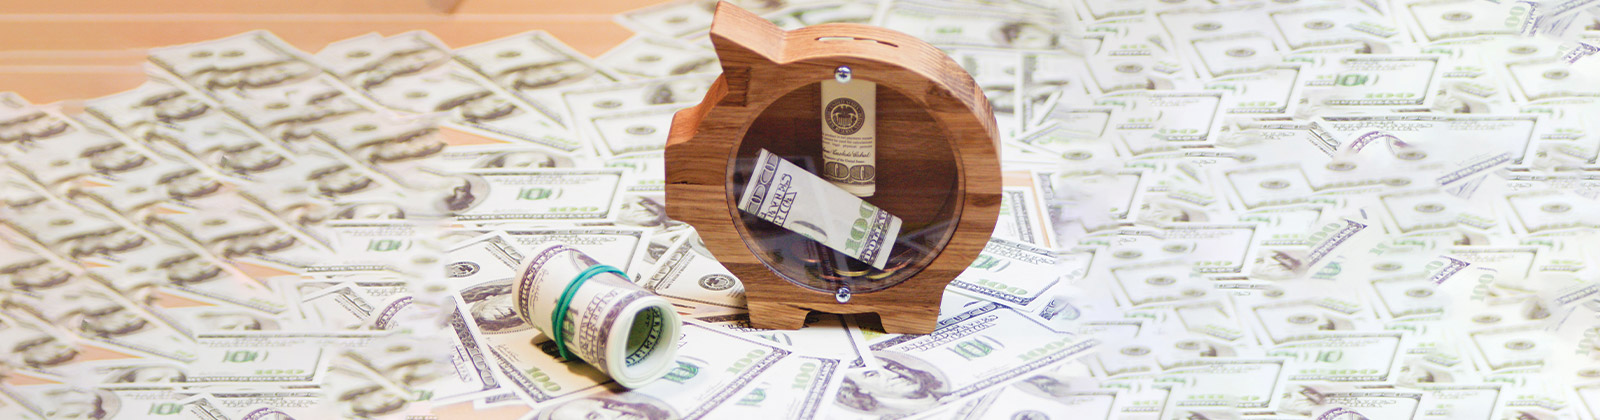 Wooden Piggy Bank and Cash